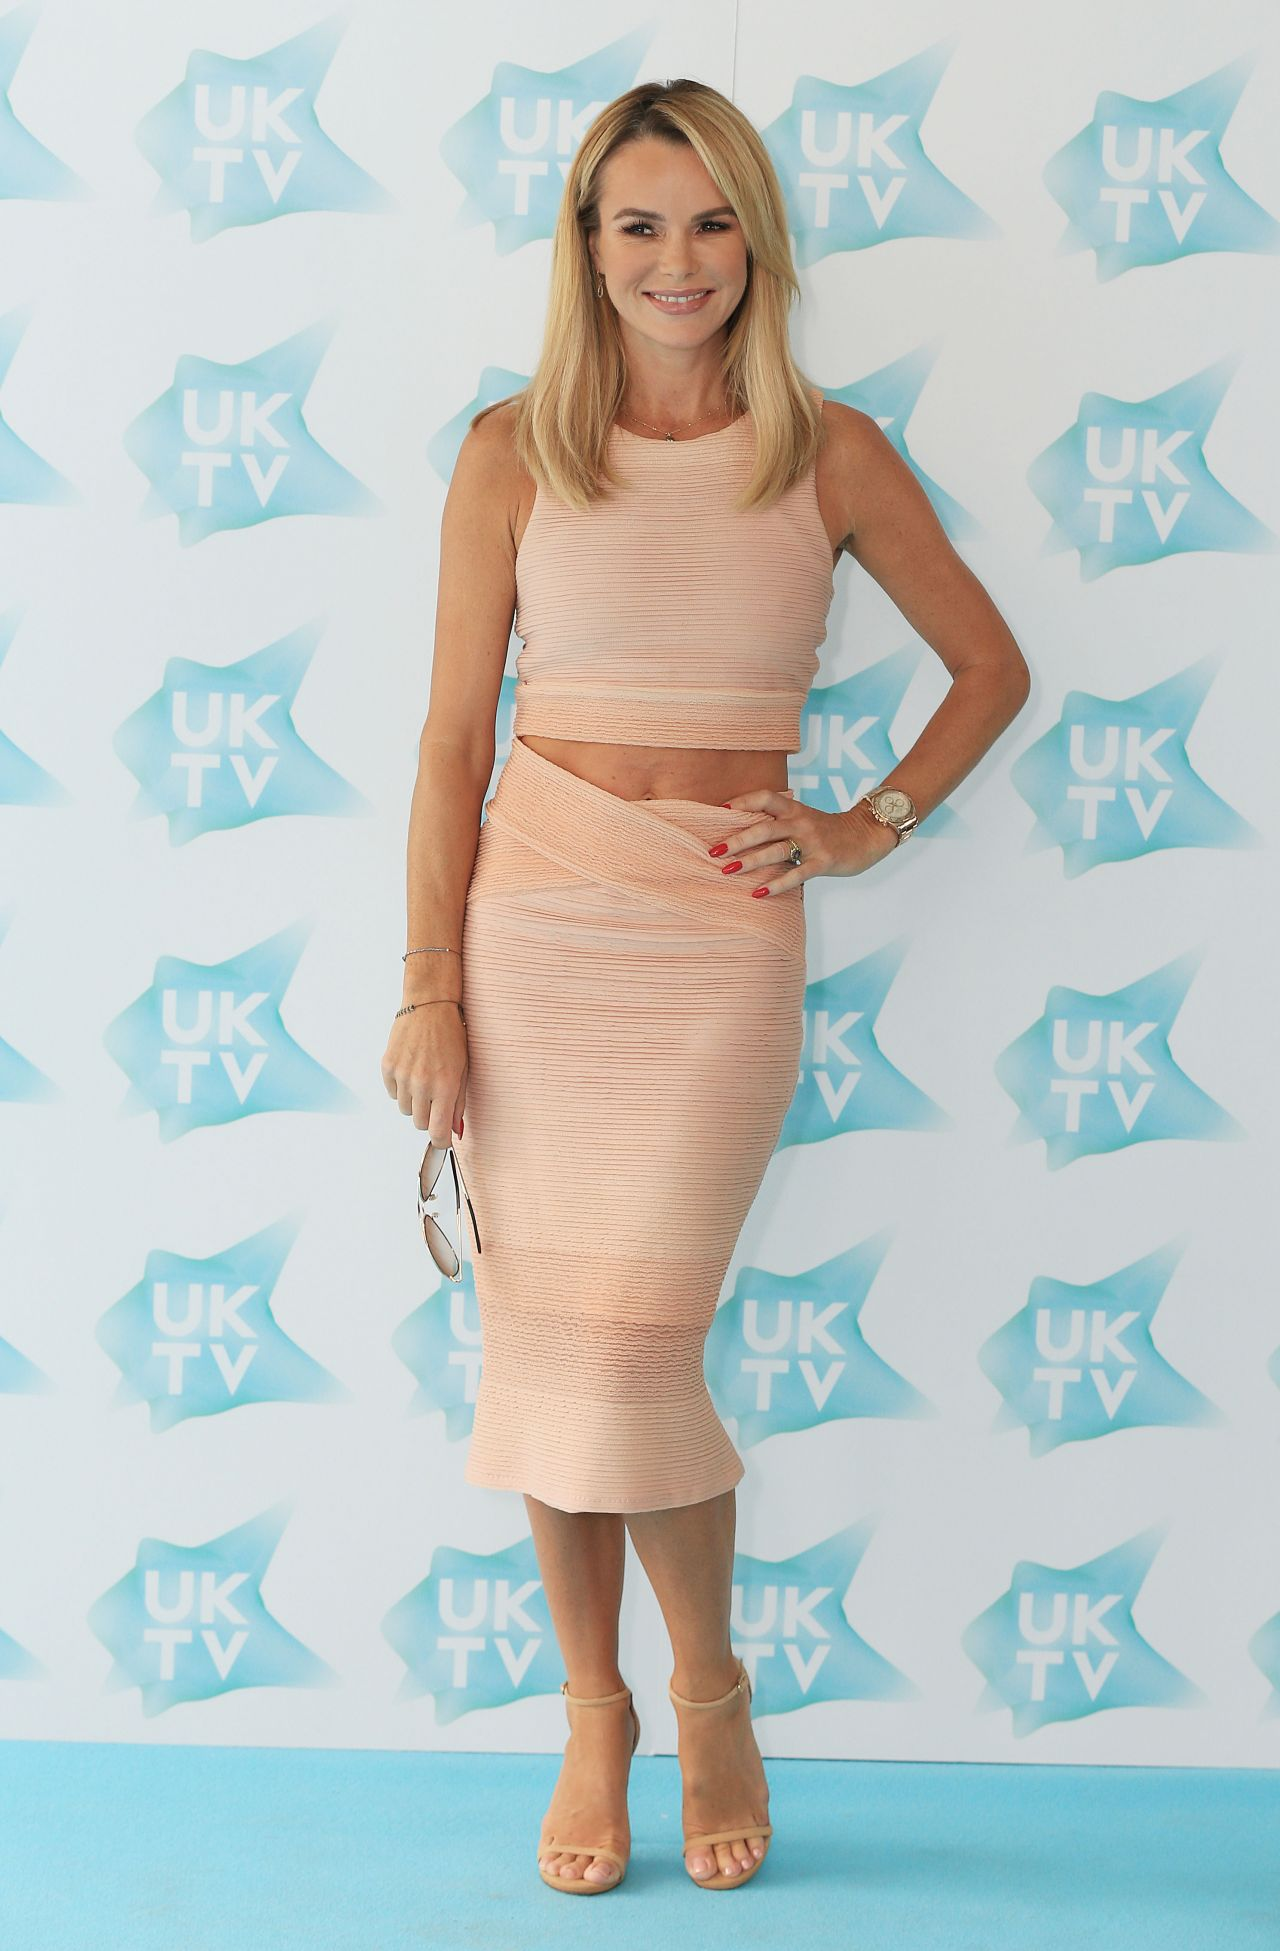 amanda holden 39 uktv live 39 new season launch in london 9